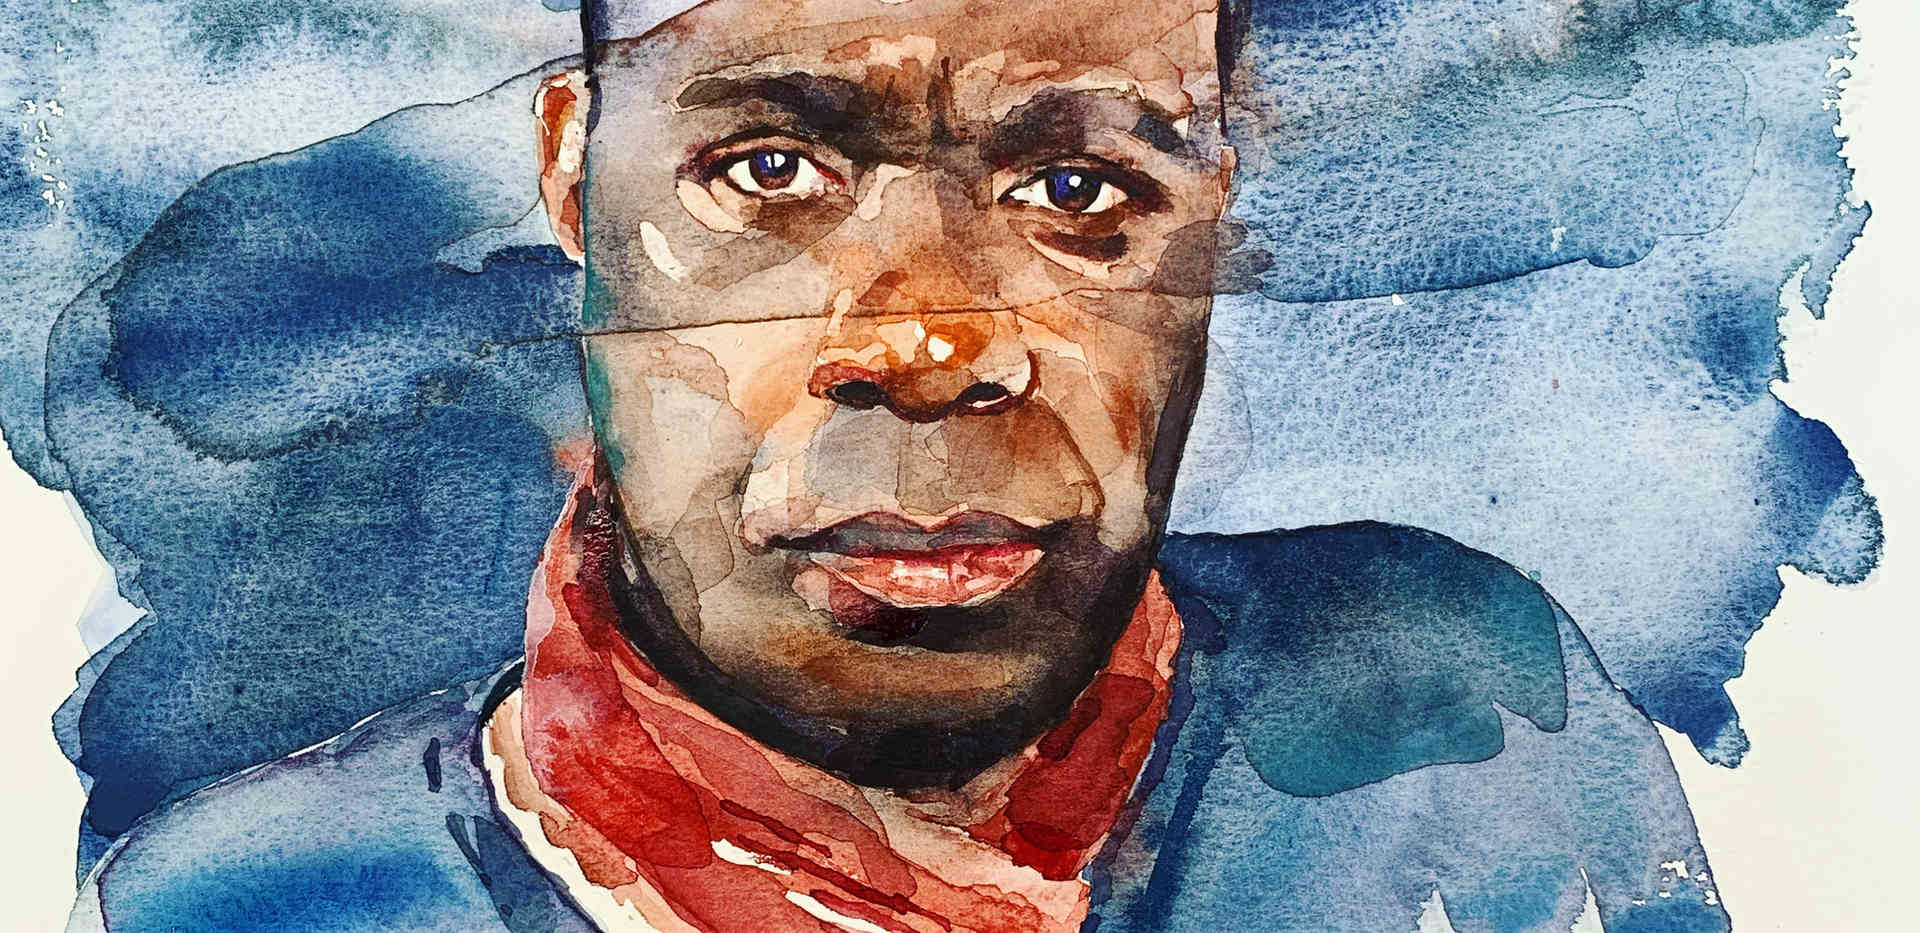 'Clive Myrie' Sky Portrait Artist of the Week #mypaotw